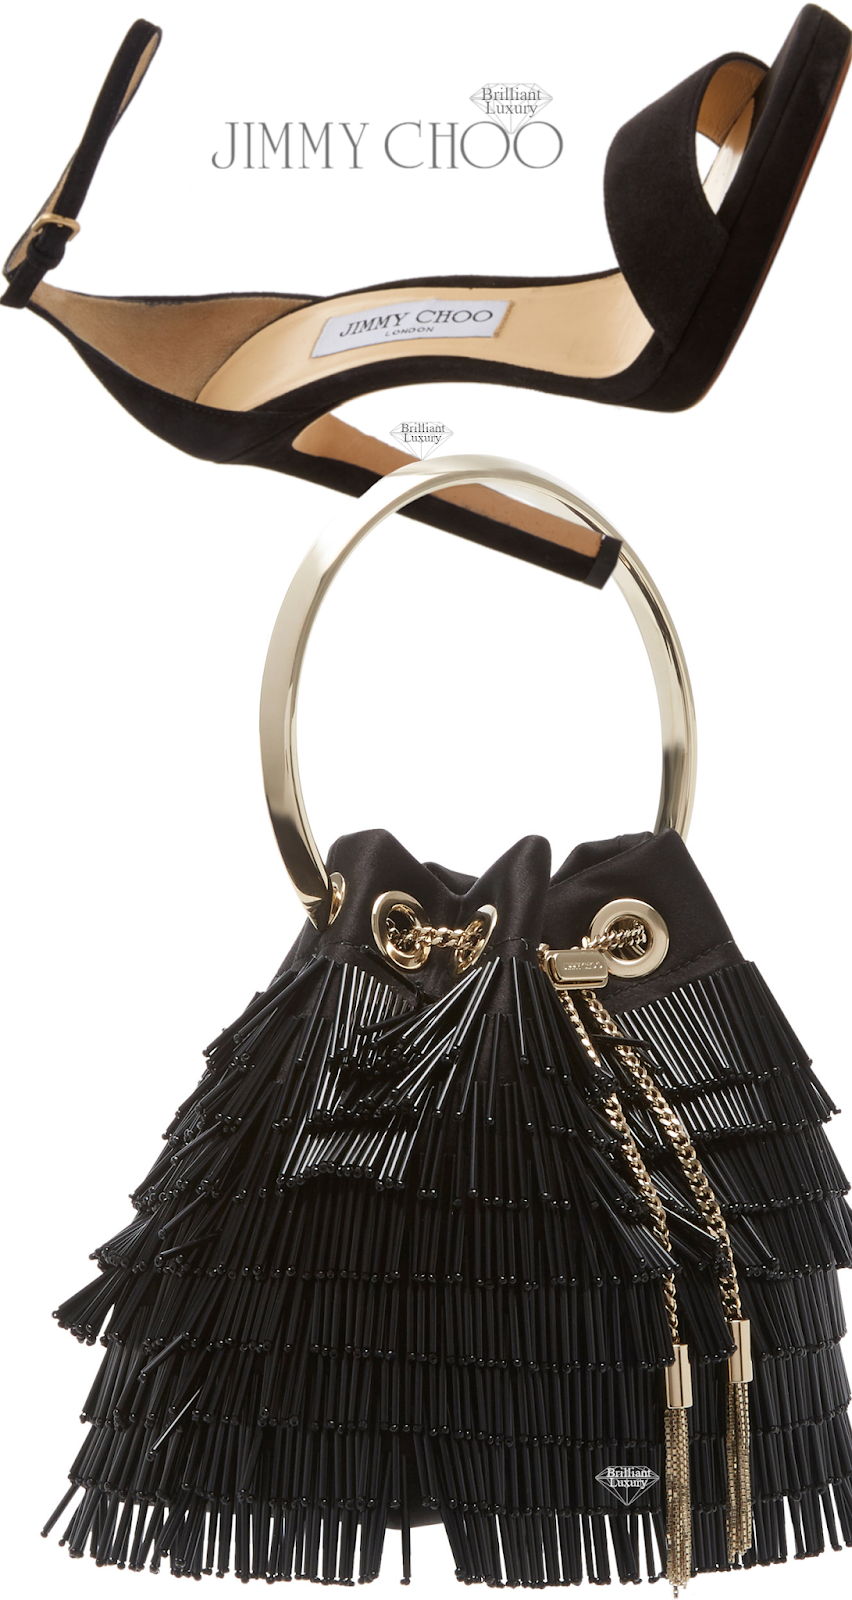 Perfect Pairings♦Jimmy Choo Misty Black Suede Platform Sandals and Bon Bon Fringed Black Crystal-Embellished Satin Bag #brilliantluxury